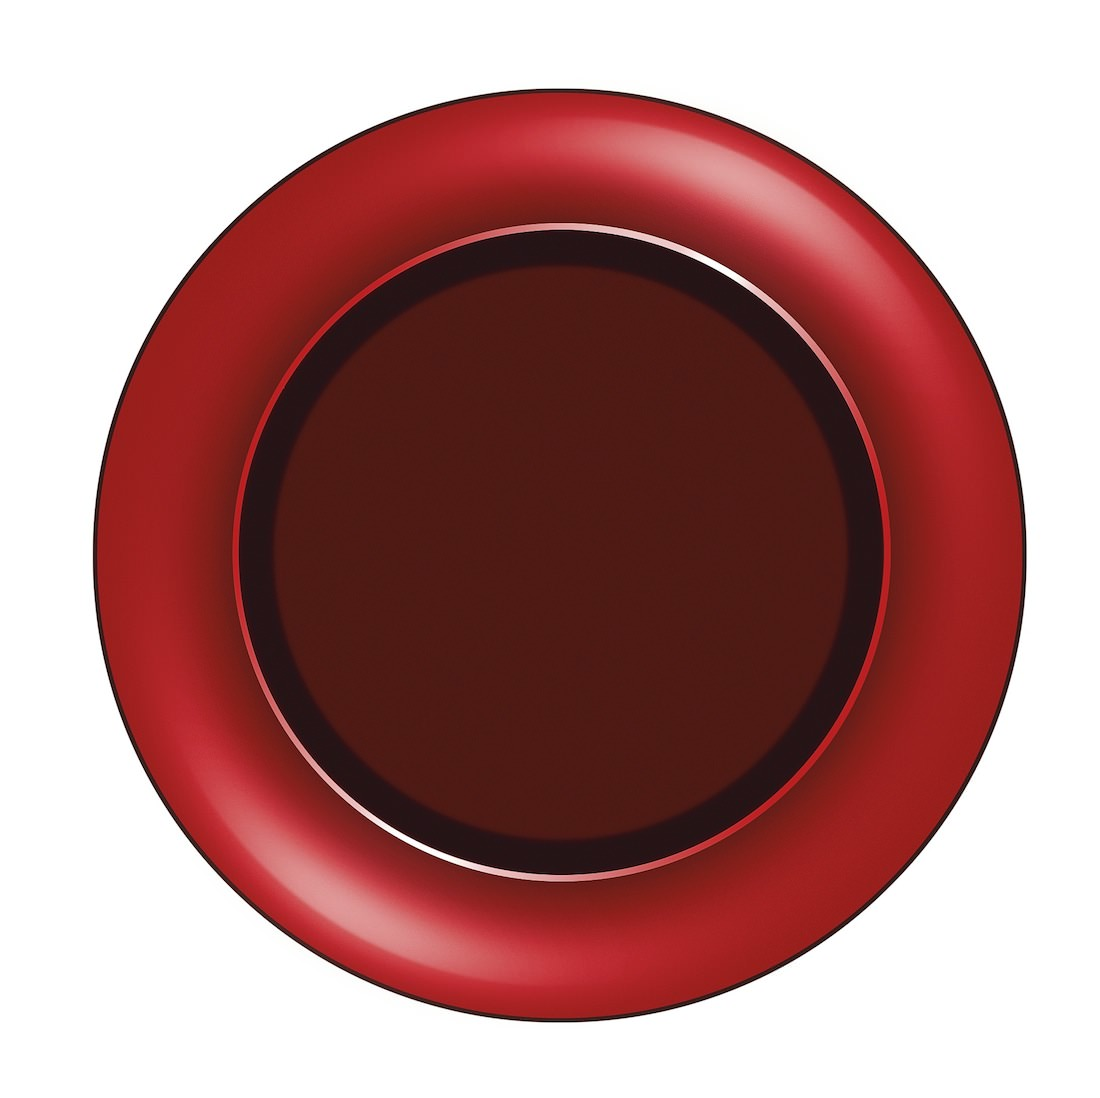 Mac Pro Red Product 3